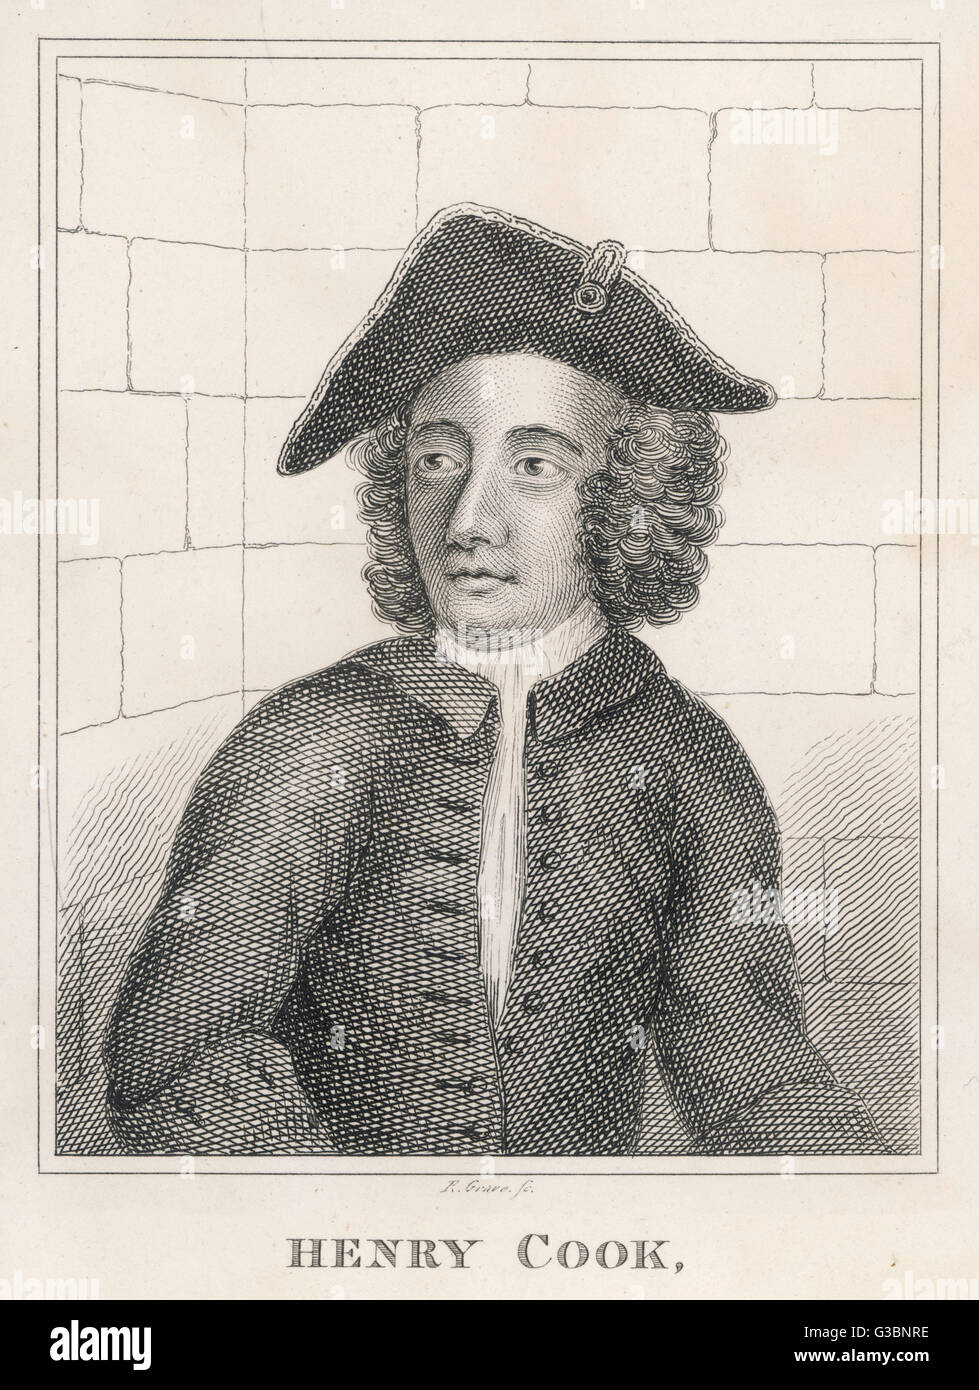 HENRY COOK: Debtor, petty  thief, giver of threats of  violence, foot-pad,  highwayman, horse thief,  shoemaker, - Stock Image